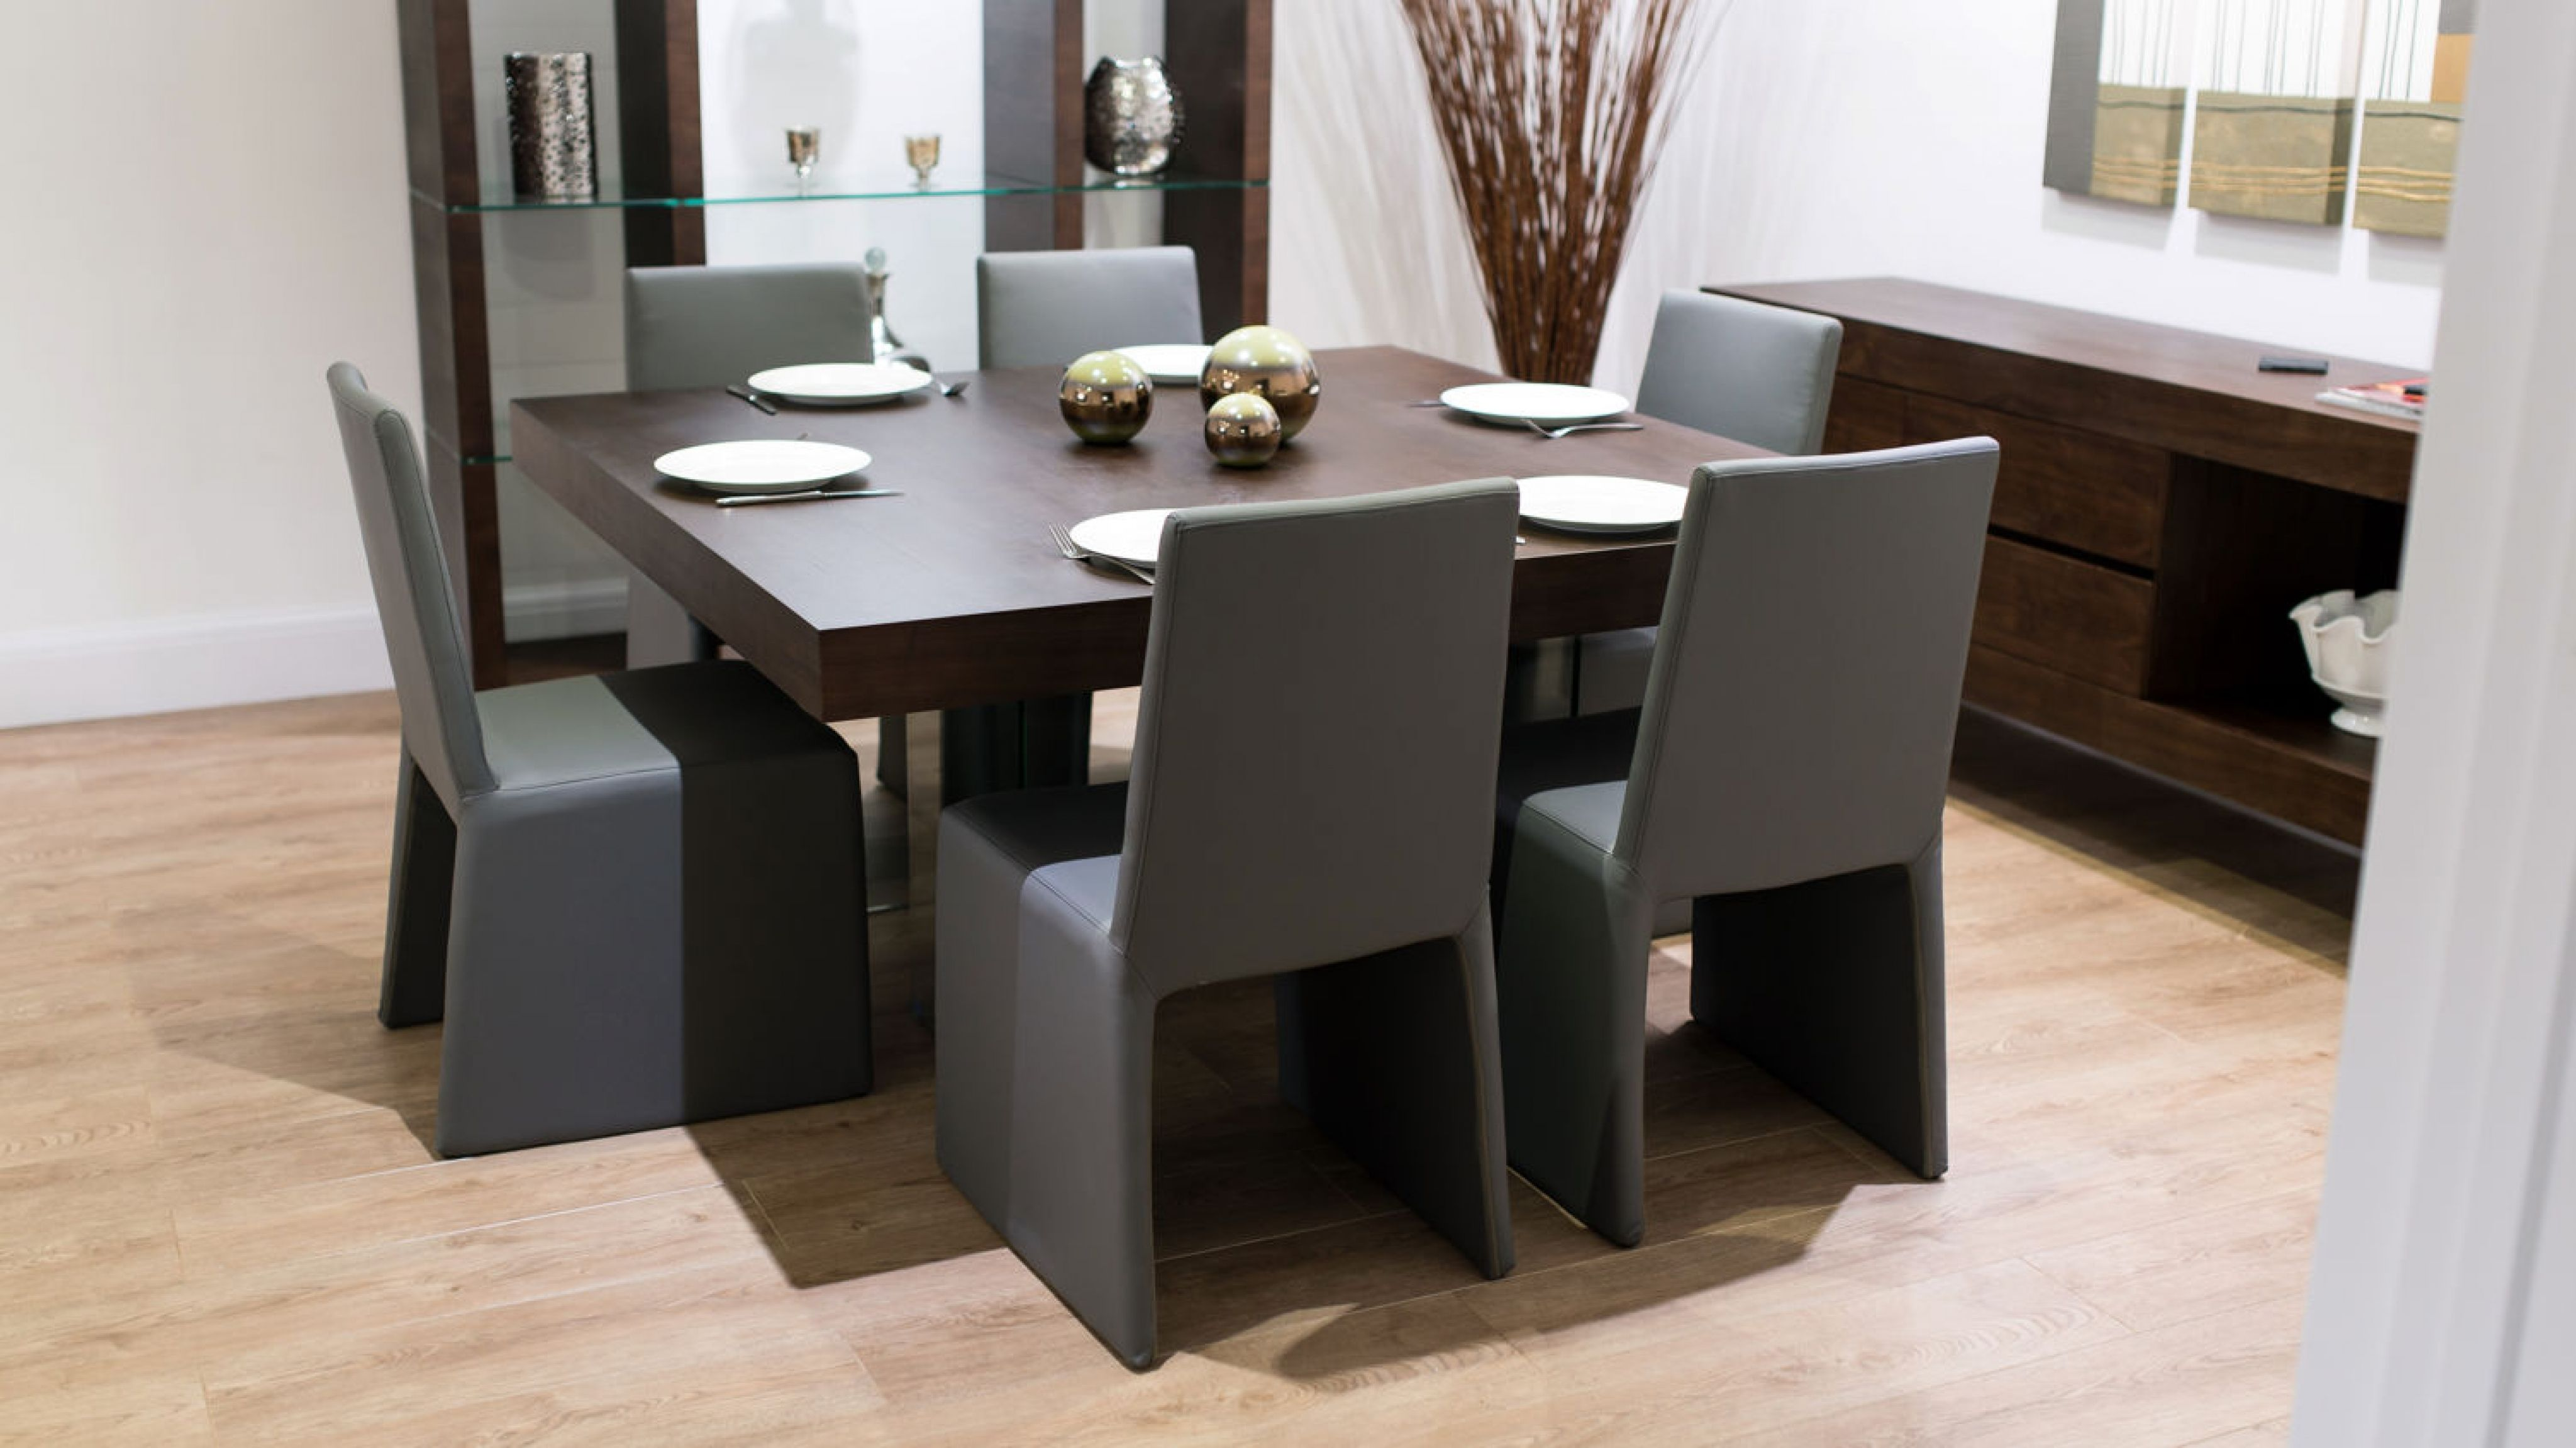 Square Dining Table 8 Seater Interior Paint Color Ideas Check More At Http Mindlessapparel Co Dining Table Marble Large Dining Room Table Dining Room Table